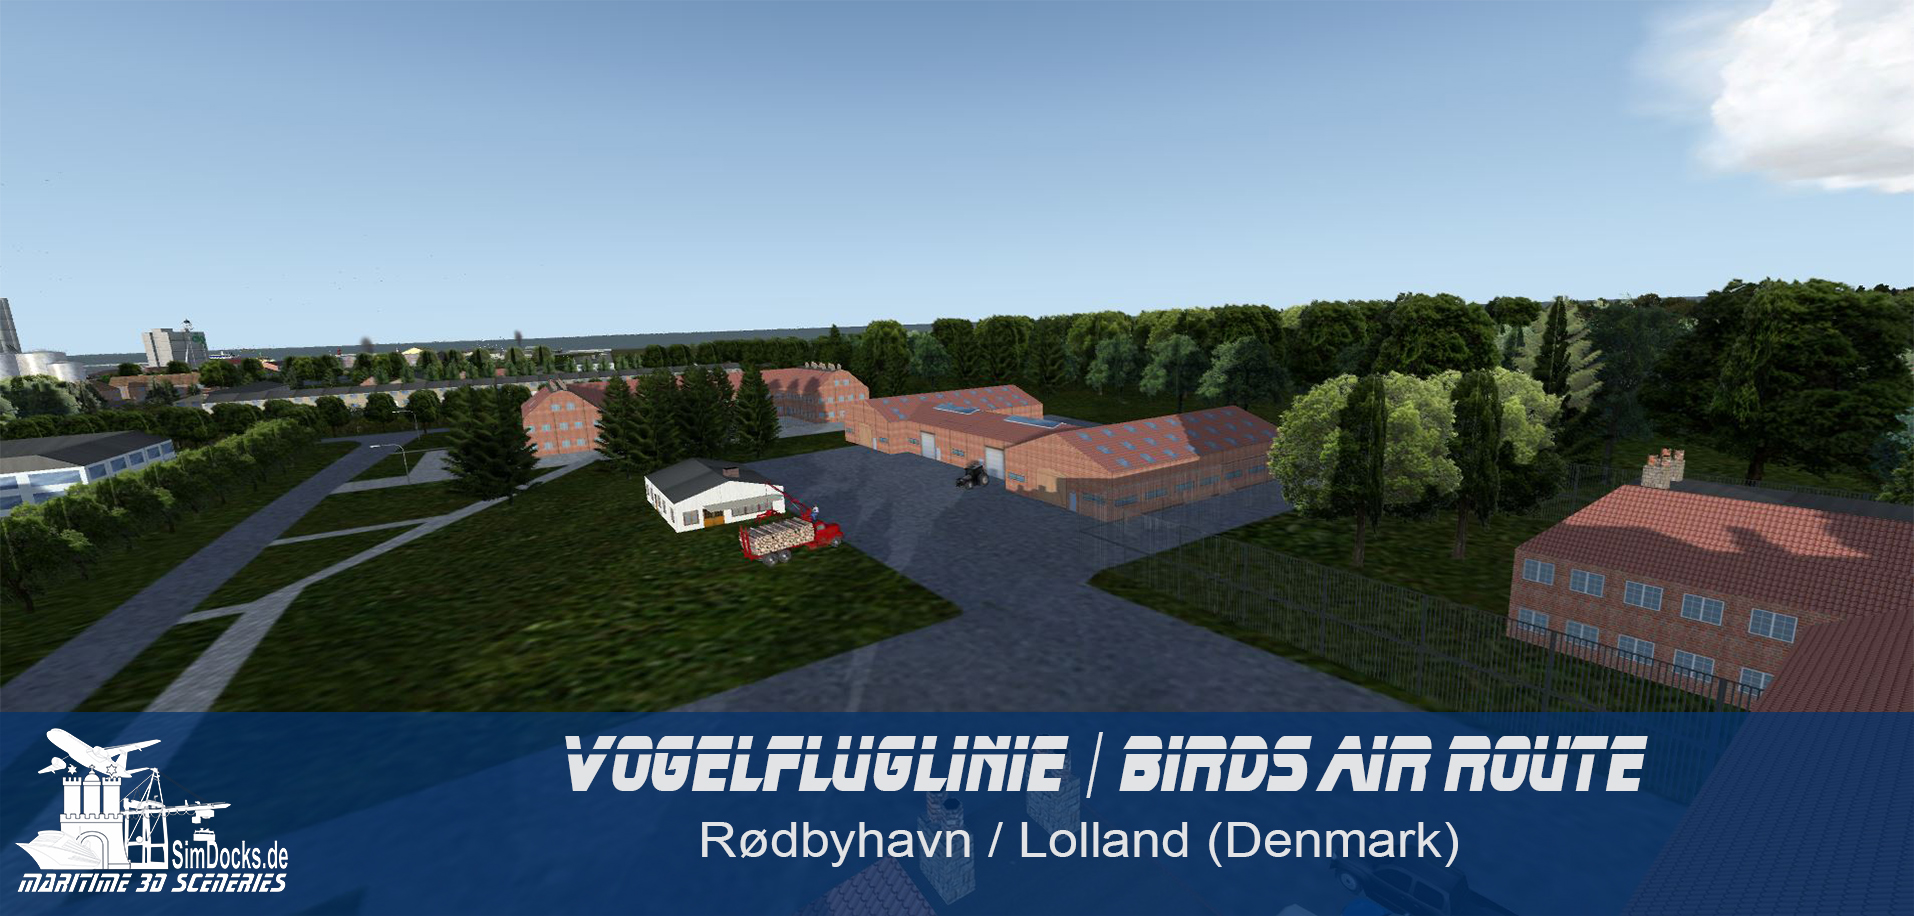 SIMDOCKS.DE - BIRDS AIR ROUTE FROM PUTTGARDEN TO RODBYHAVN (+EKMB)